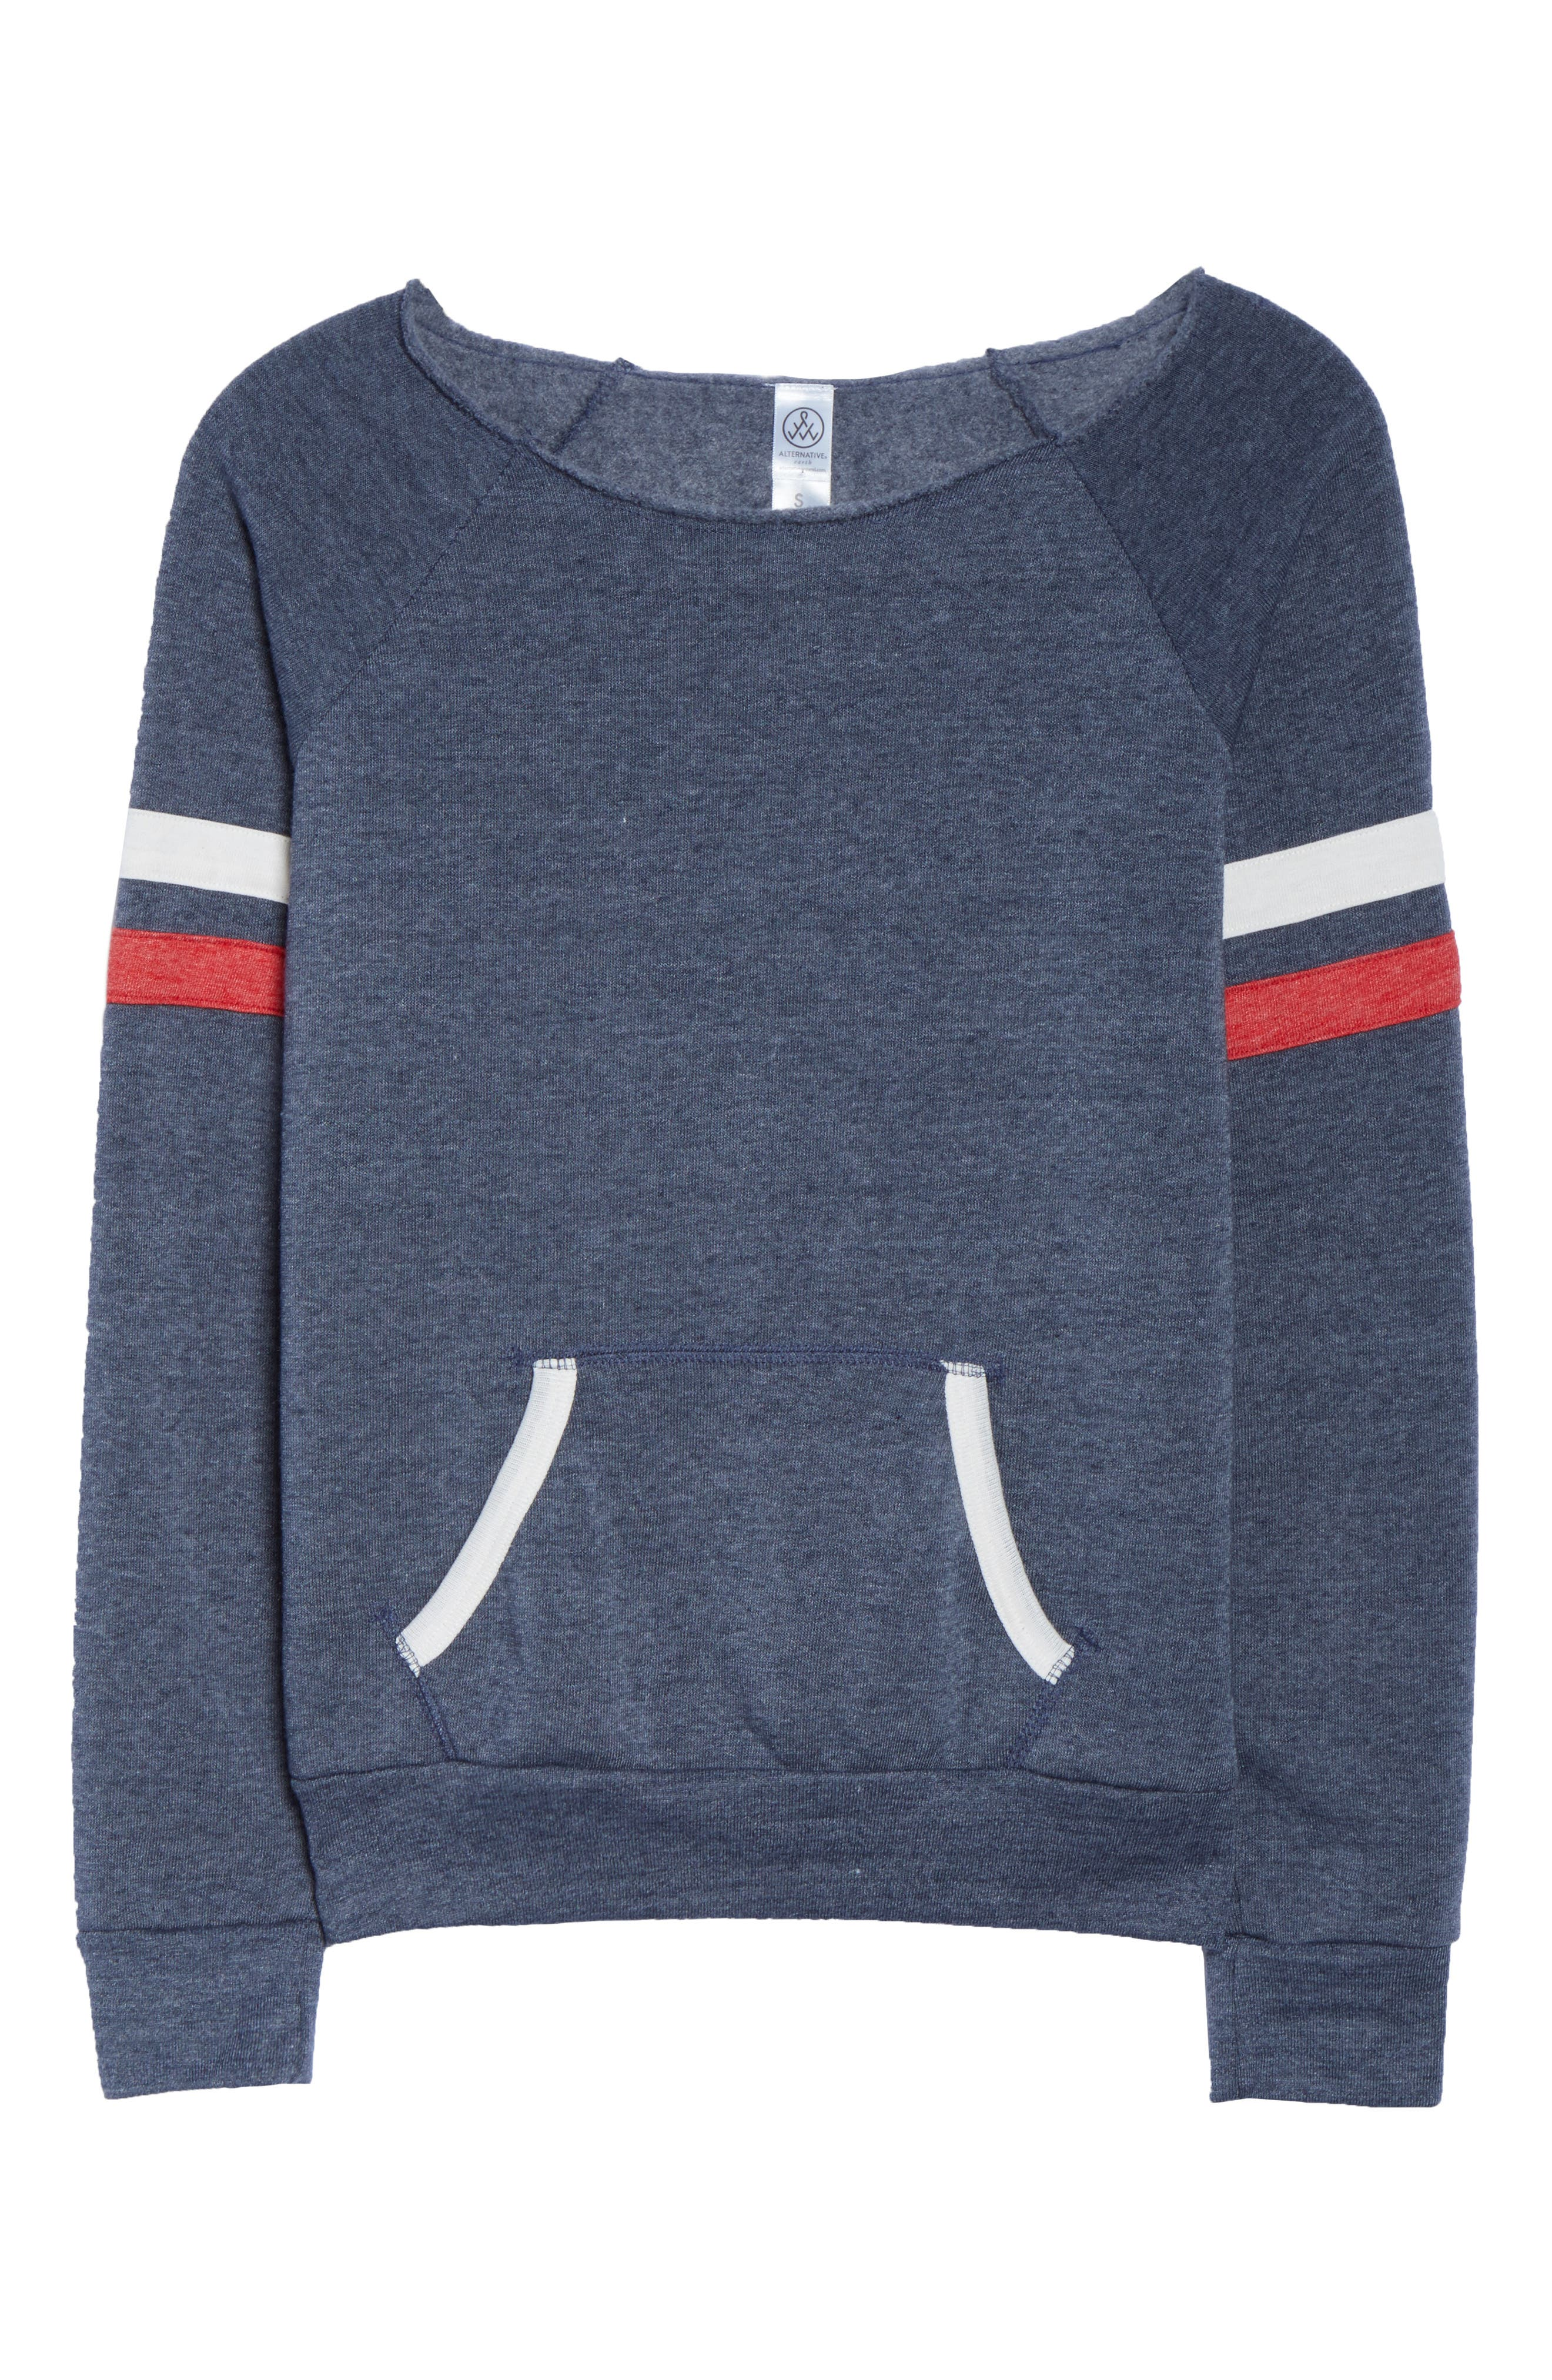 Maniac Sport Pullover,                             Alternate thumbnail 4, color,                             Eco True Navy